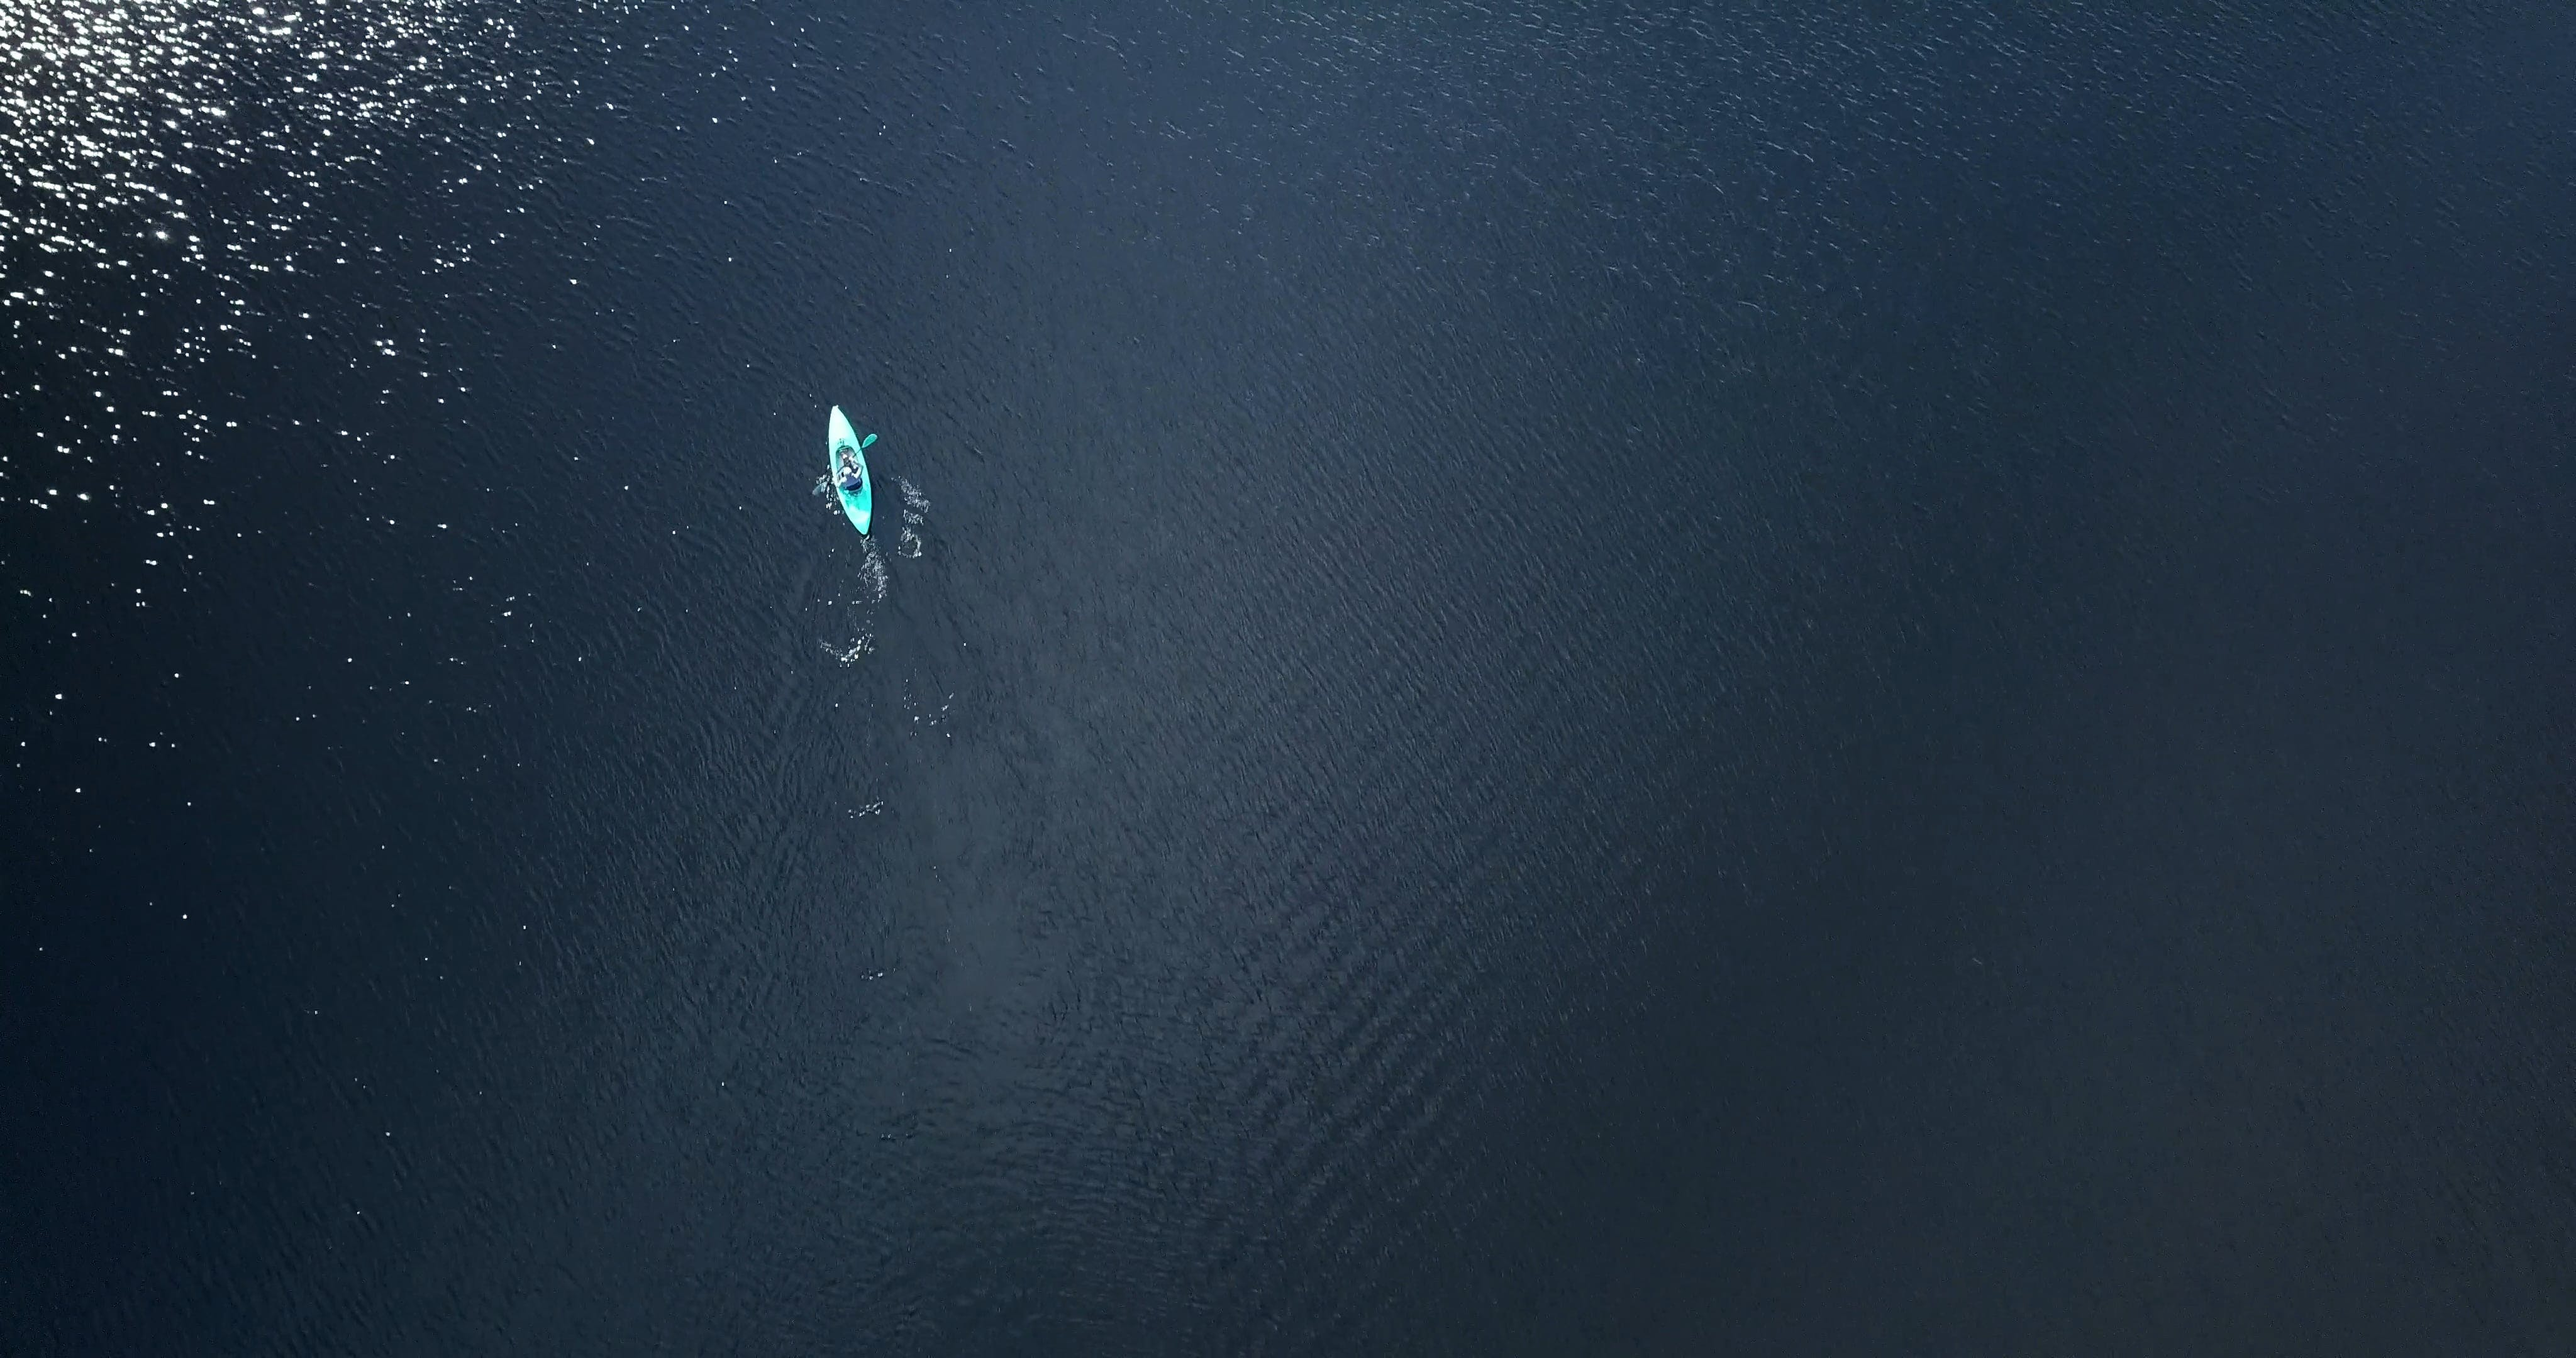 Kayaking In The Middle Of A Big Body Of Water